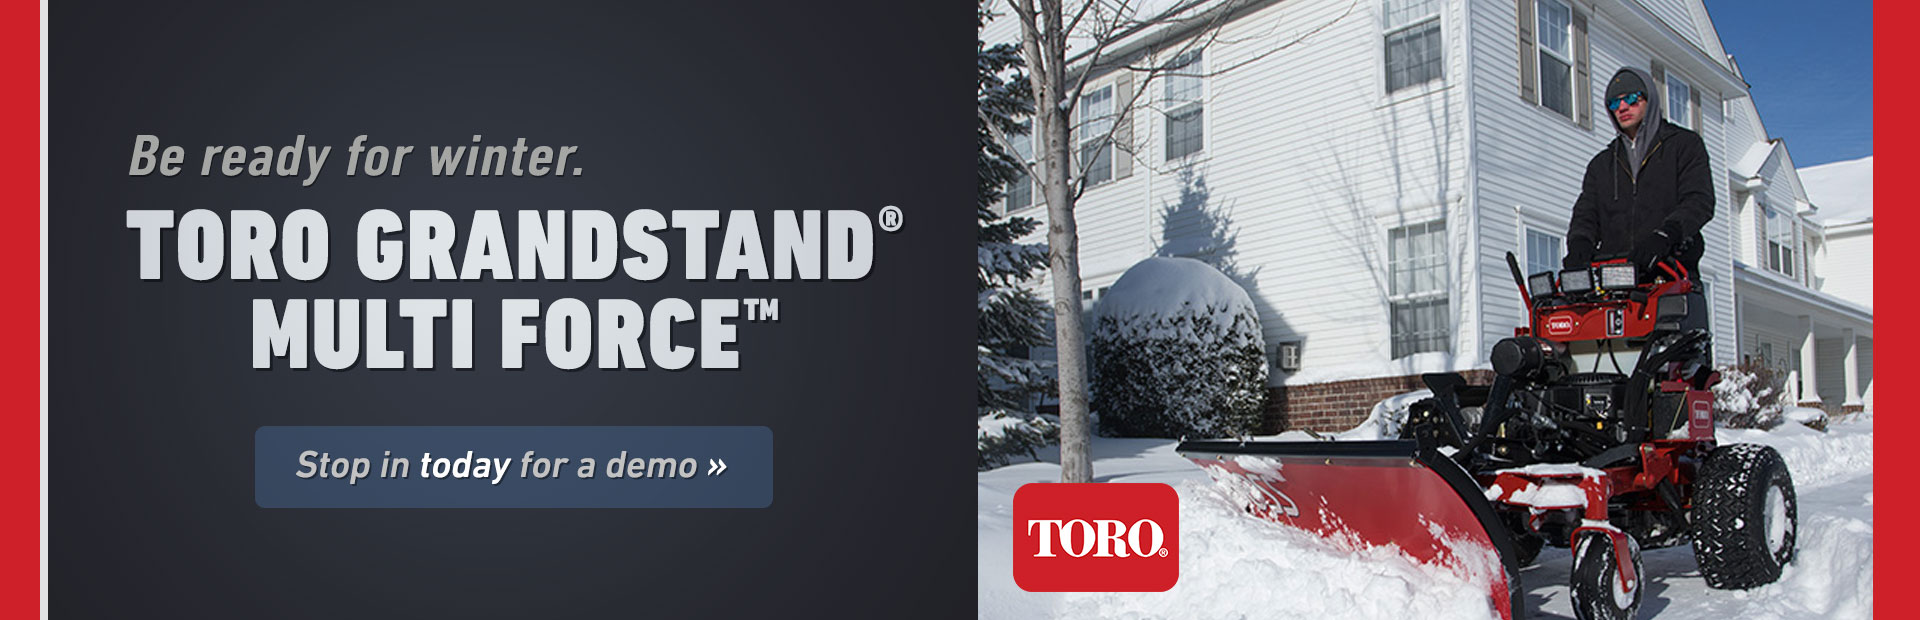 Be ready for winter with the Toro GrandStand® MULTI FORCE™! Stop in today for a demo.